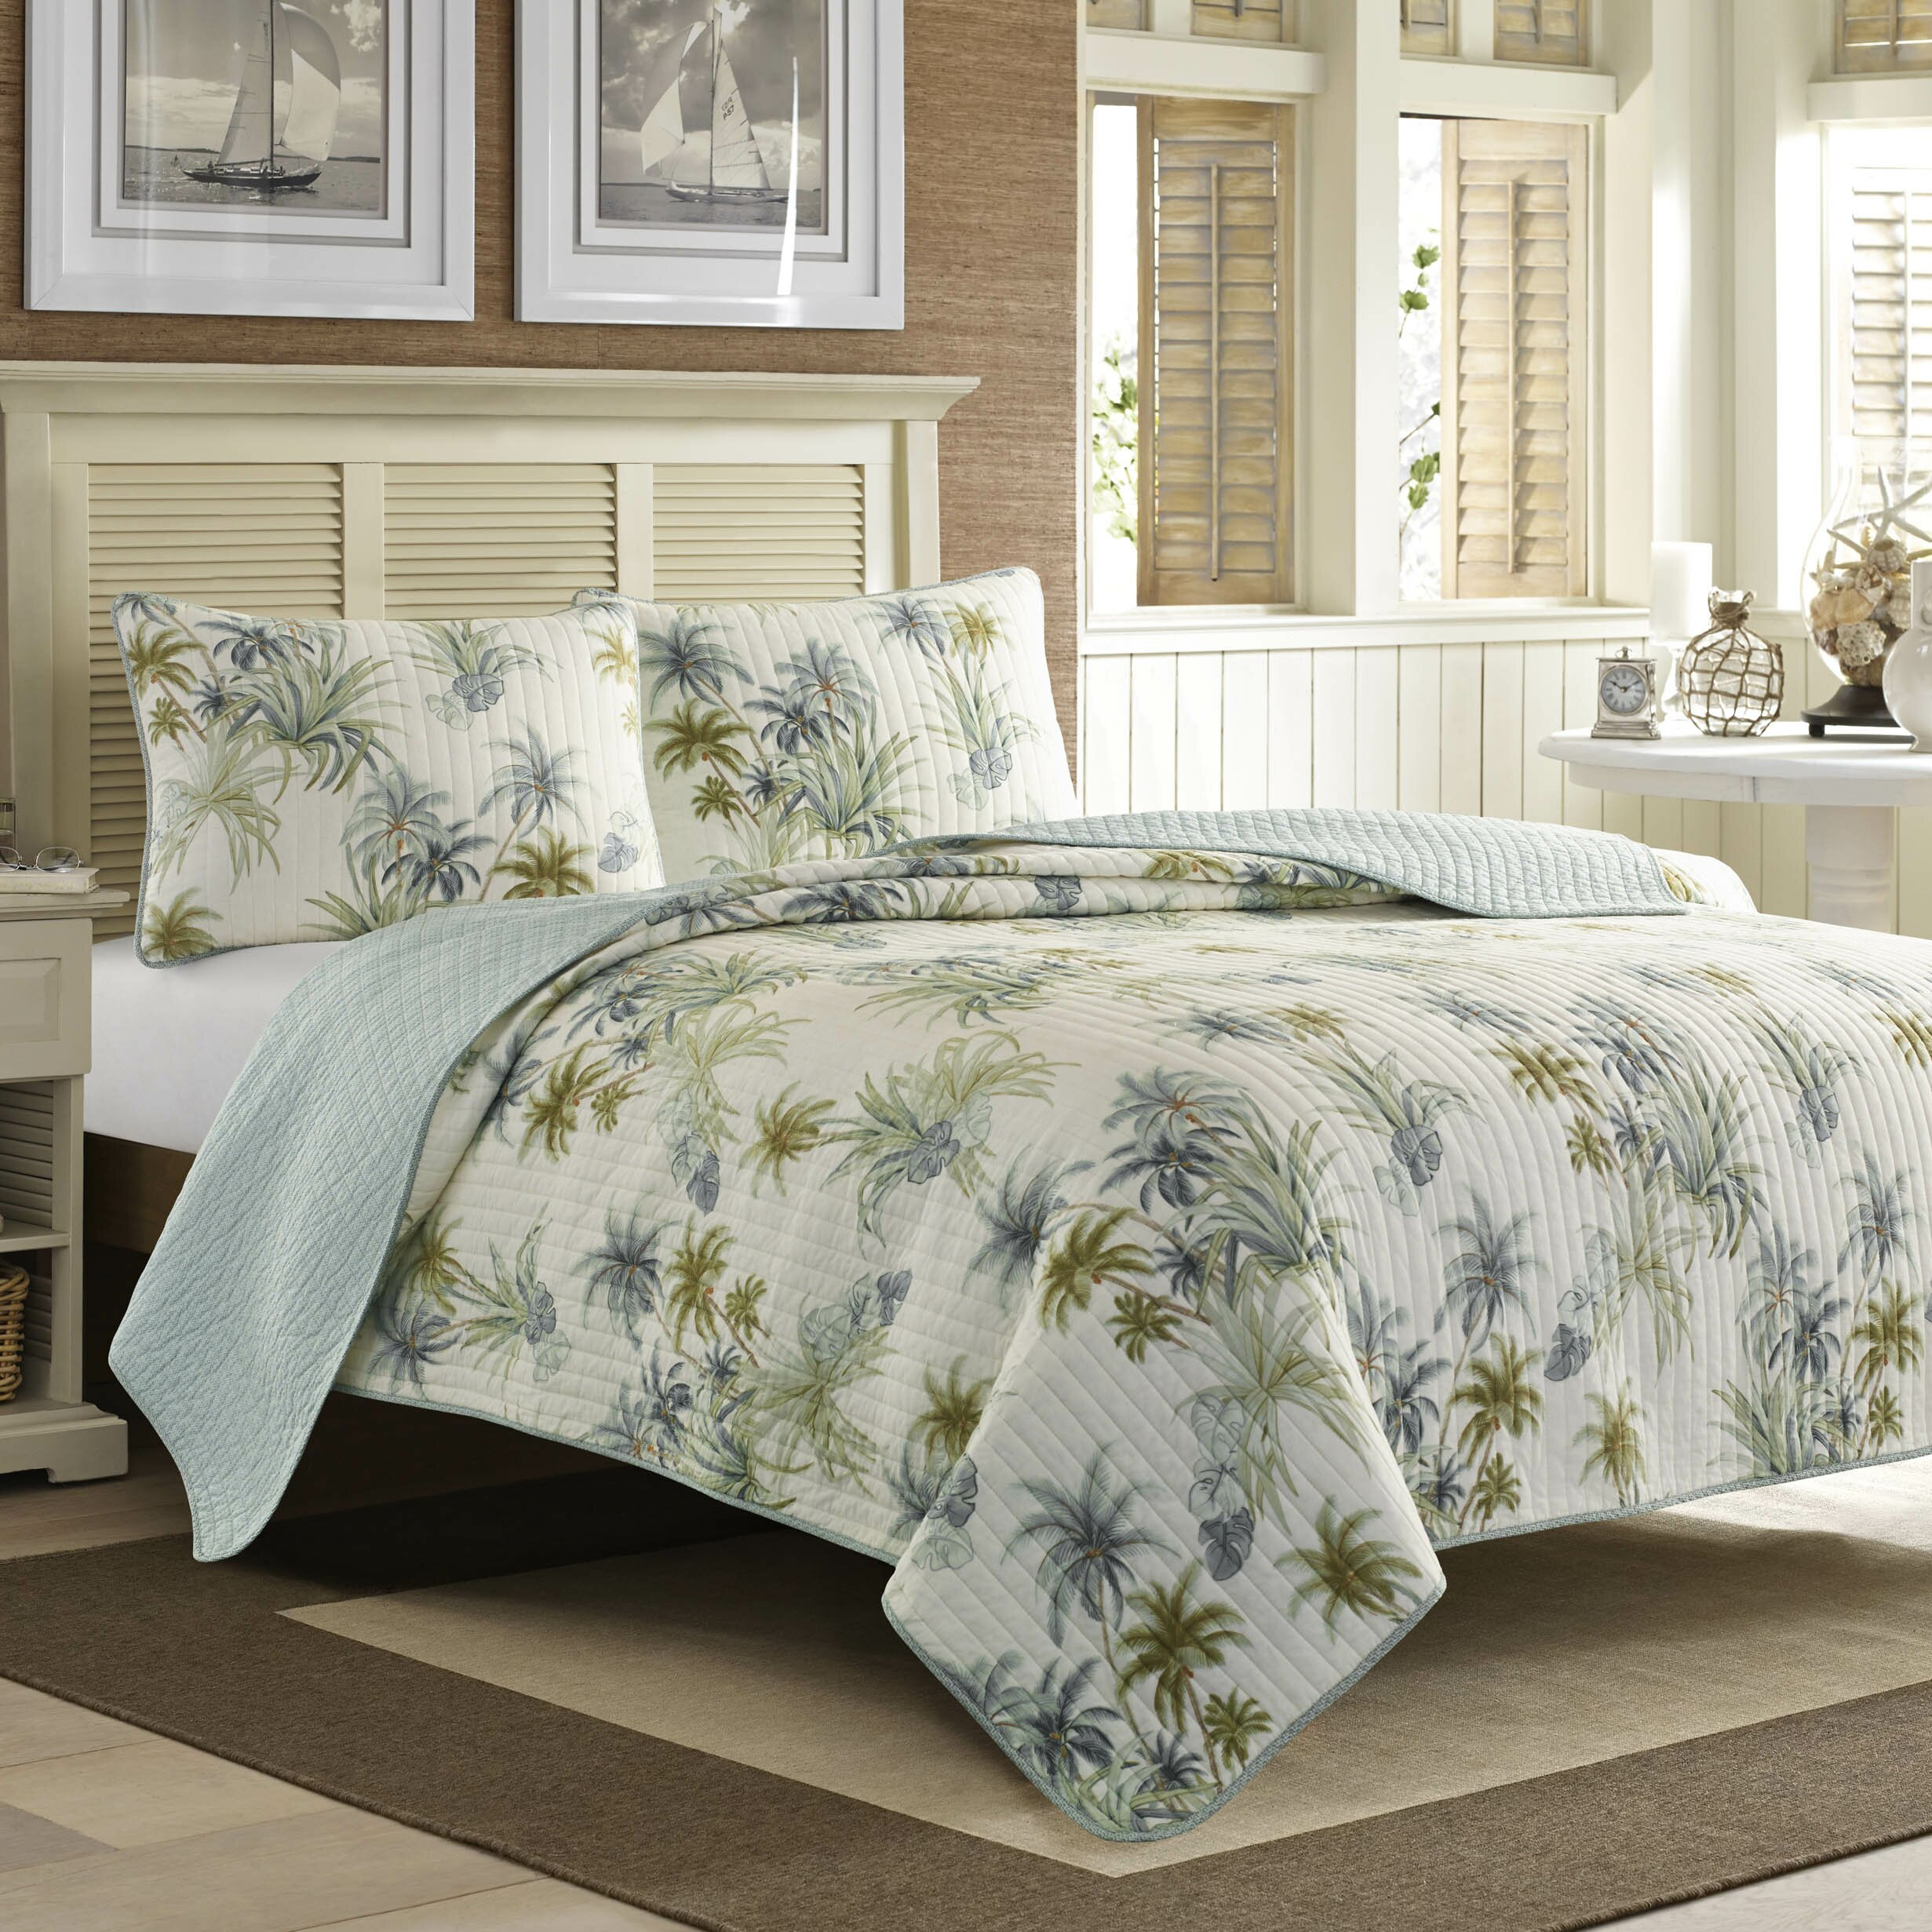 Tommy Bahama Bedding Serenity Palms Quilt Collection